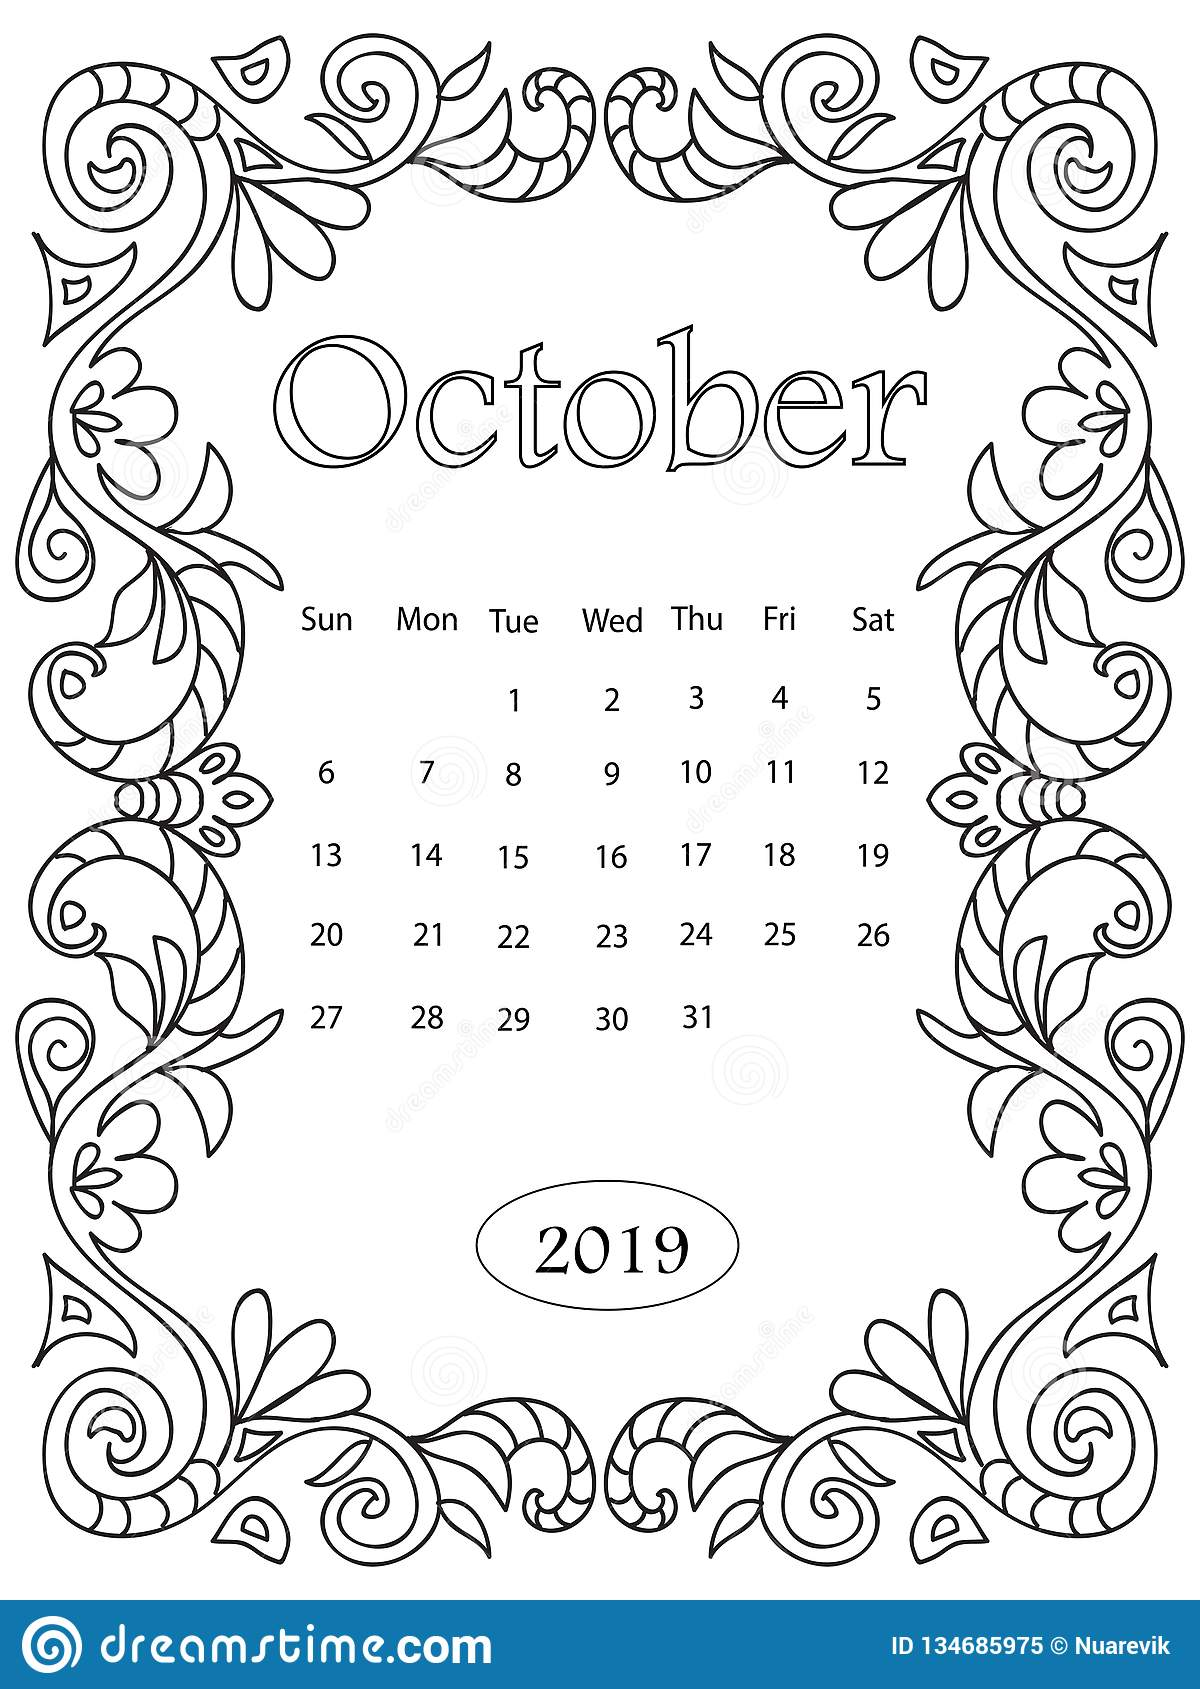 2019 Coloring Pages Printable Monthly Calendars For Kids | Kids calendar,  Scrapbook calendar, Coloring pages | 1689x1200